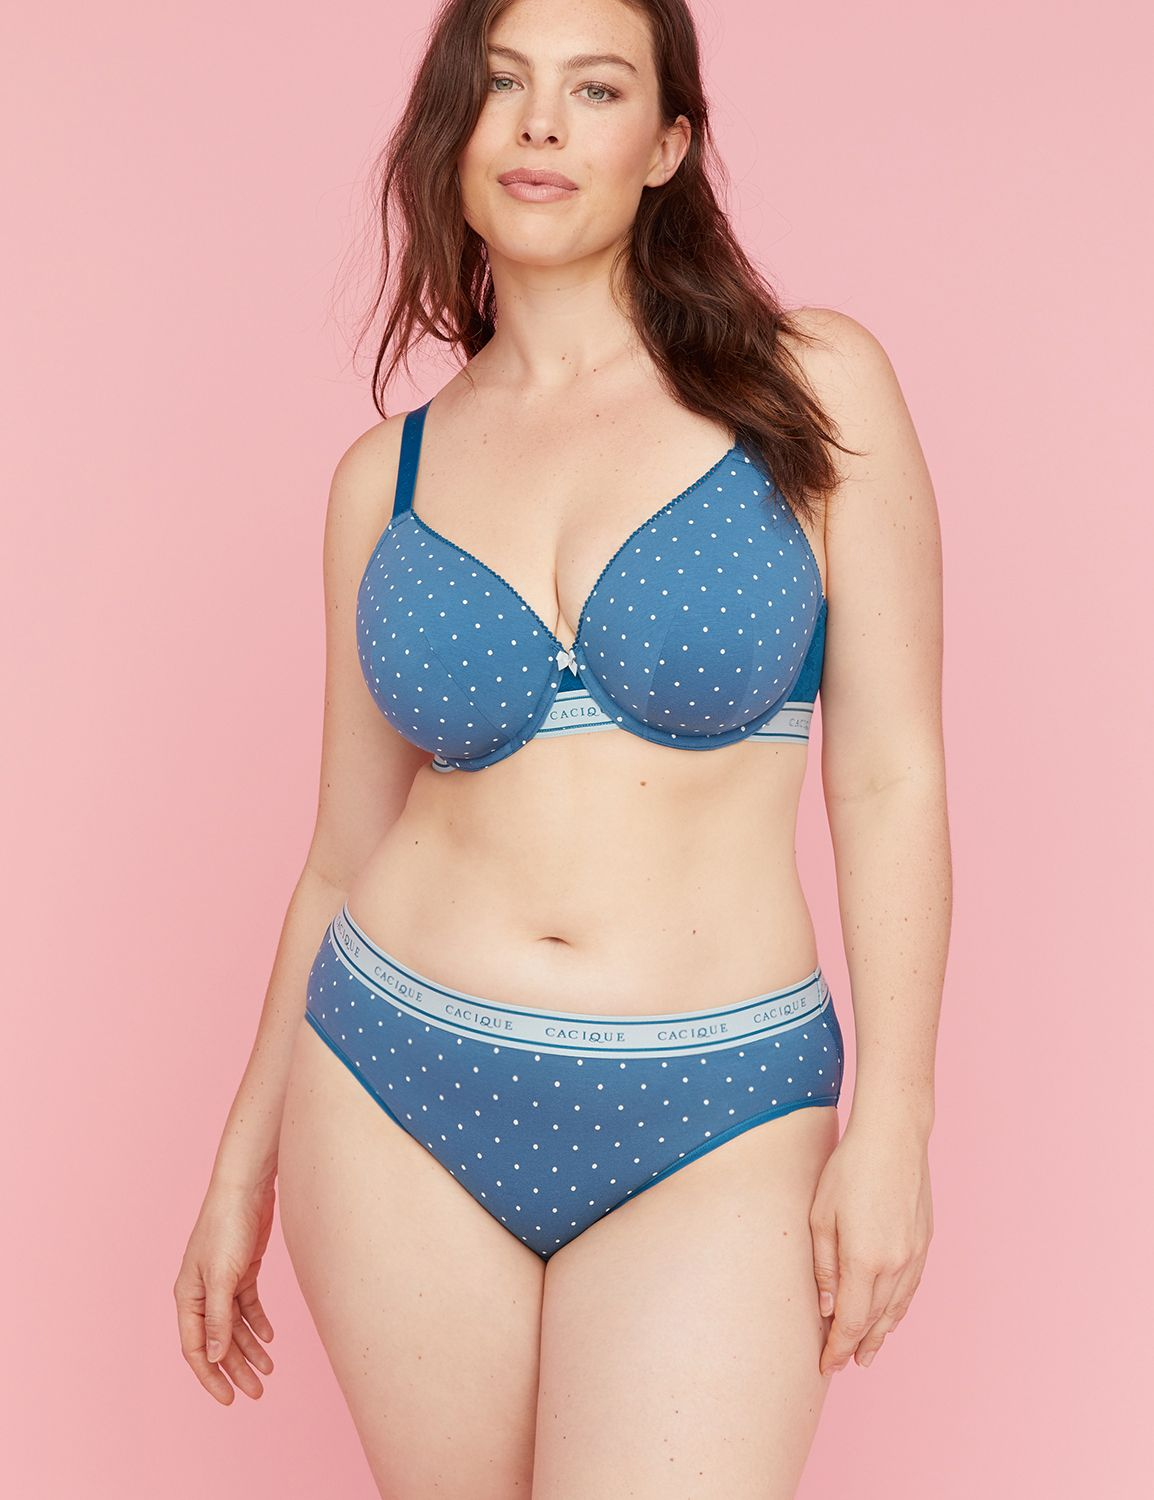 Available in Plus Size. A hipster in soft, stretchy cotton with a Stretch Lace back and striped logo elastic waistband. (We dropped Sassy from the name but didn't change a thing. Same fit. Same fabric. Same panty you love.) Sits high at the hip. Full back-coverage. Higher leg opening. Item Number #350430, Imported Plus Size Panty